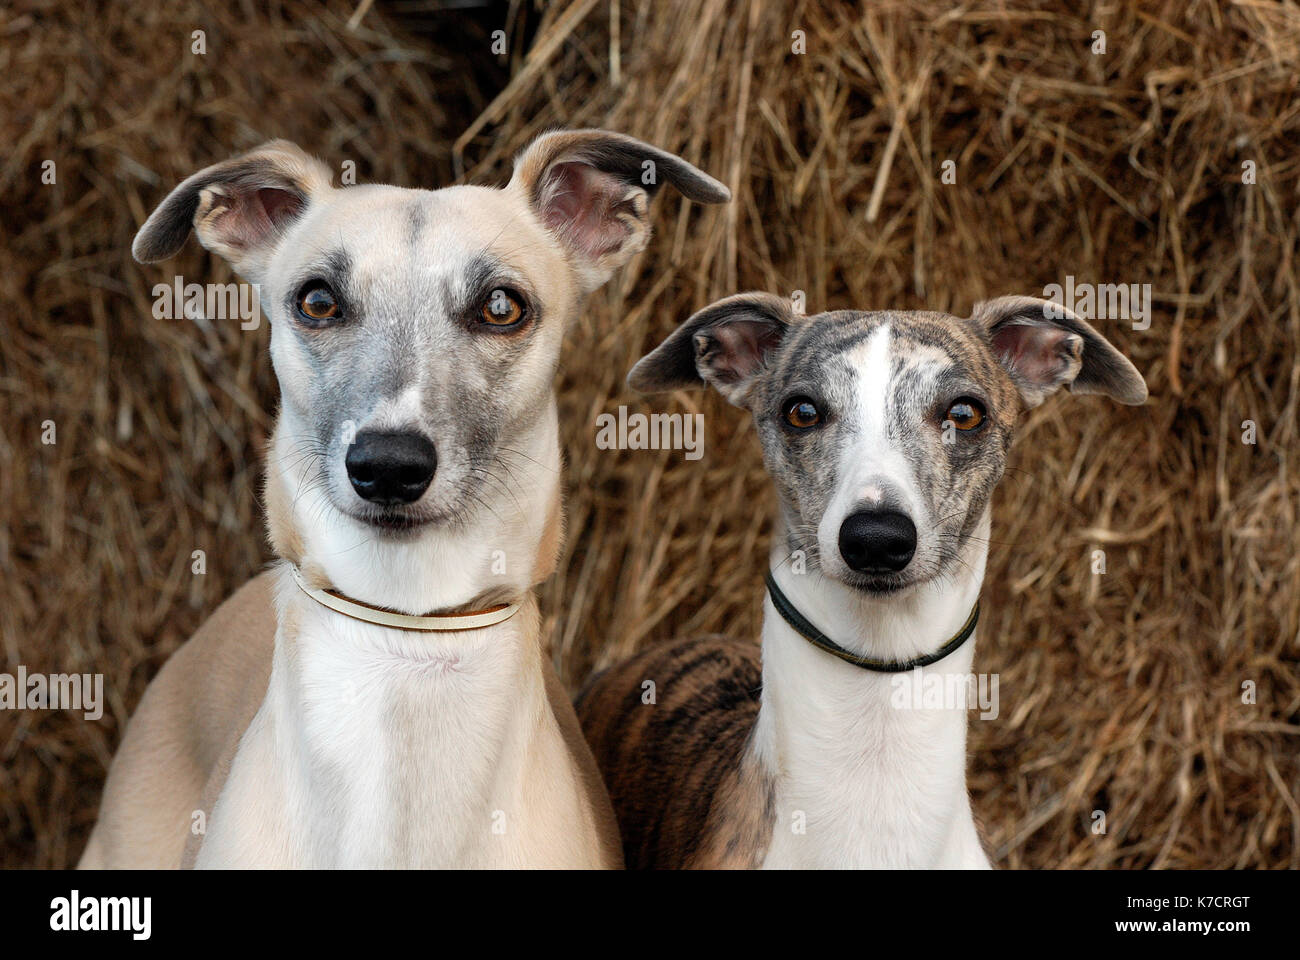 Two whippets or dogs looking cute and directly at the camera. Funny, comical, humourous canine or pooches with ears sticking out and wide eyed. - Stock Image